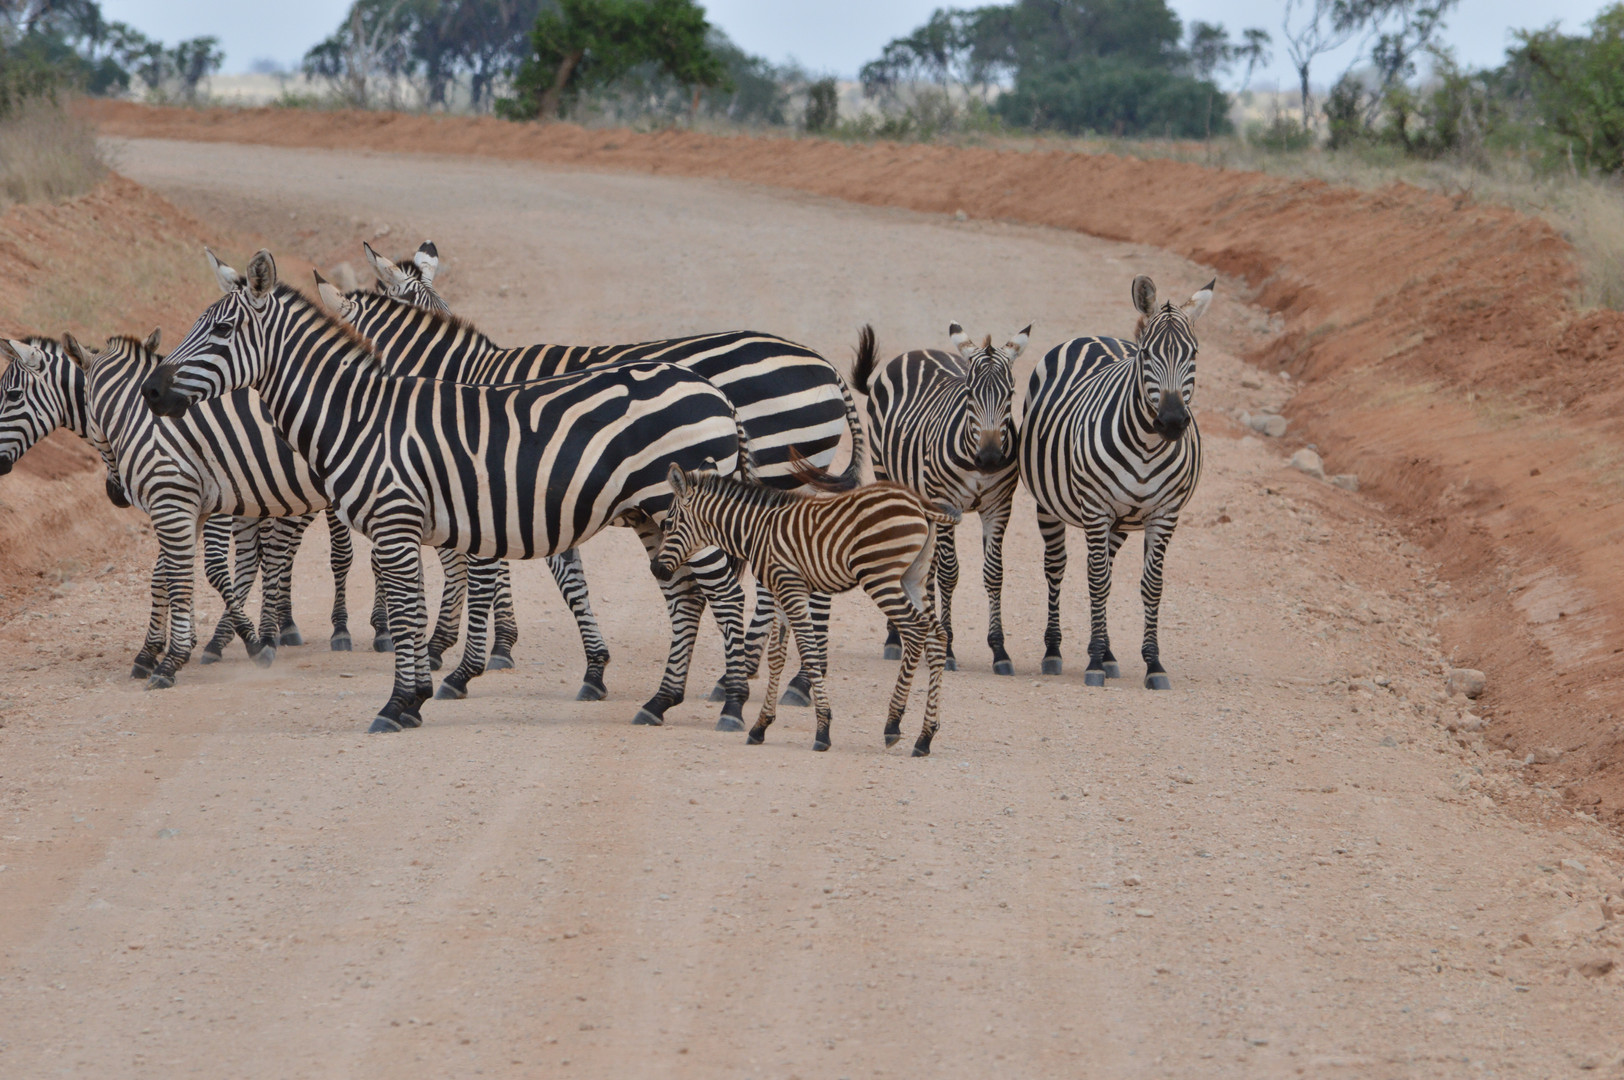 Zebras in the Tsavo